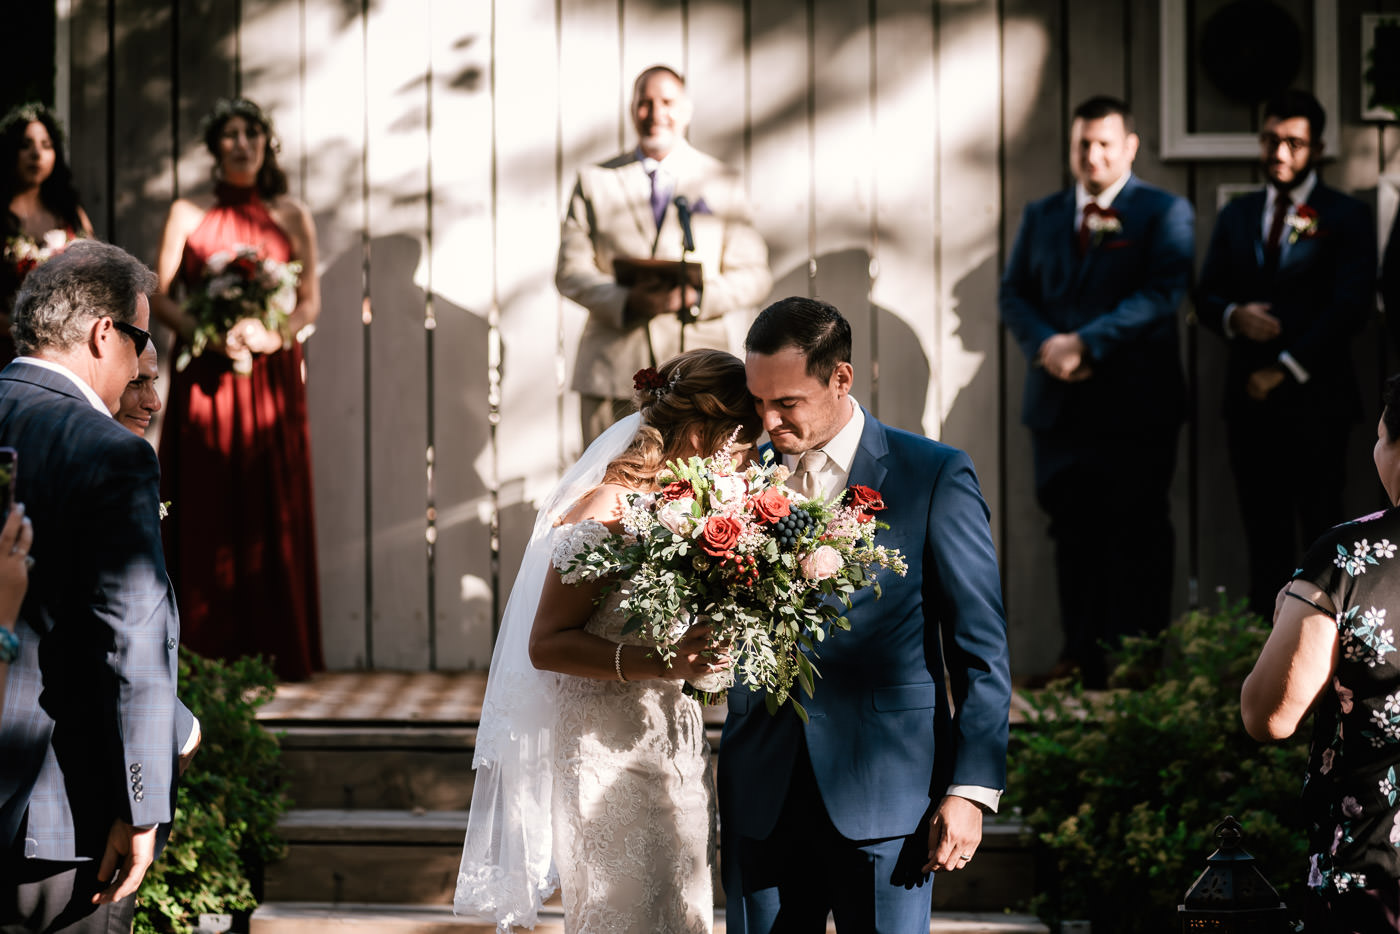 Couple takes a moment to get cloe and savor this sweet moment after pledging their lives together.